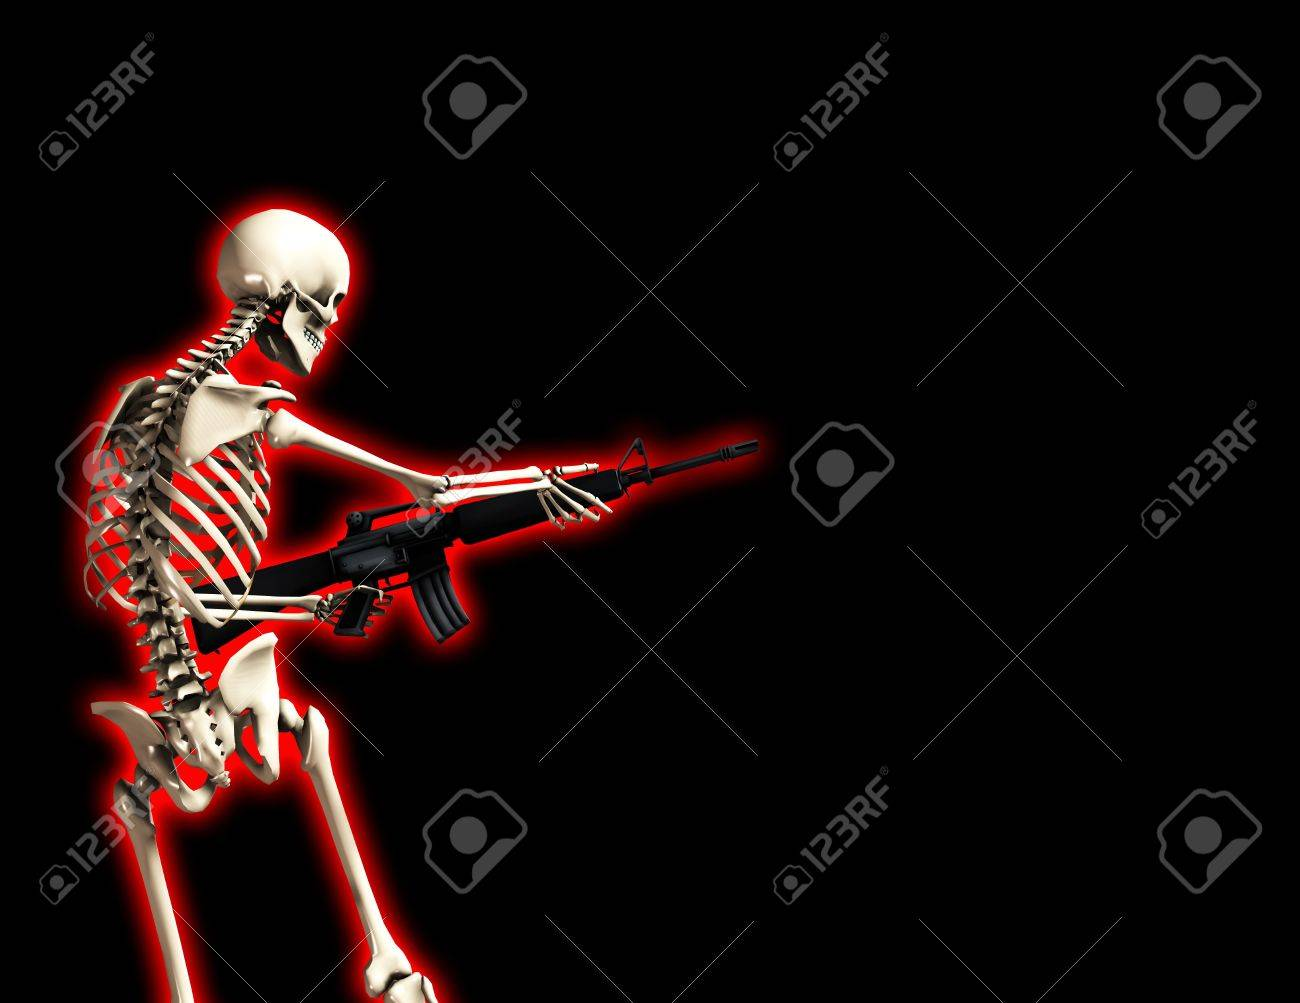 An conceptual image of a skeleton with a gun, it would be good to represent concepts of war. Stock Photo - 2441055